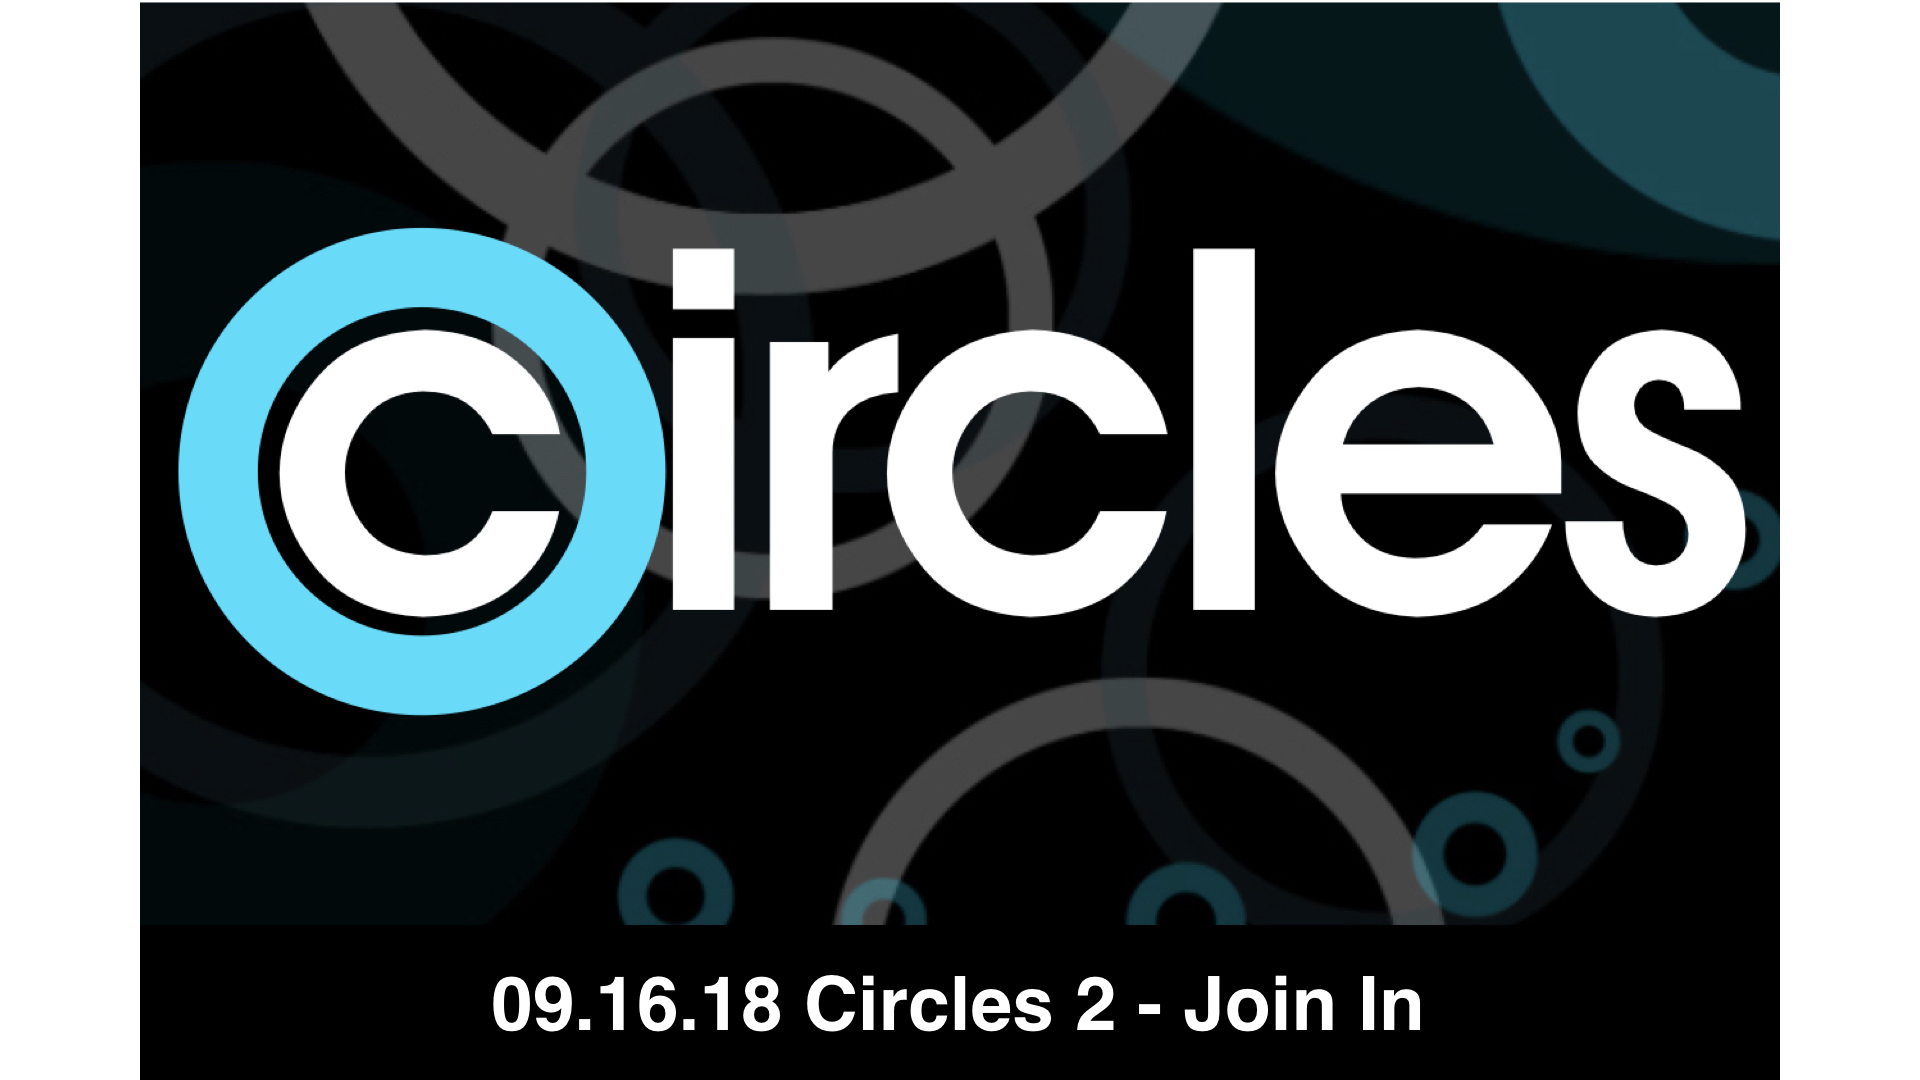 09.16.18 Circles 2 - Join In